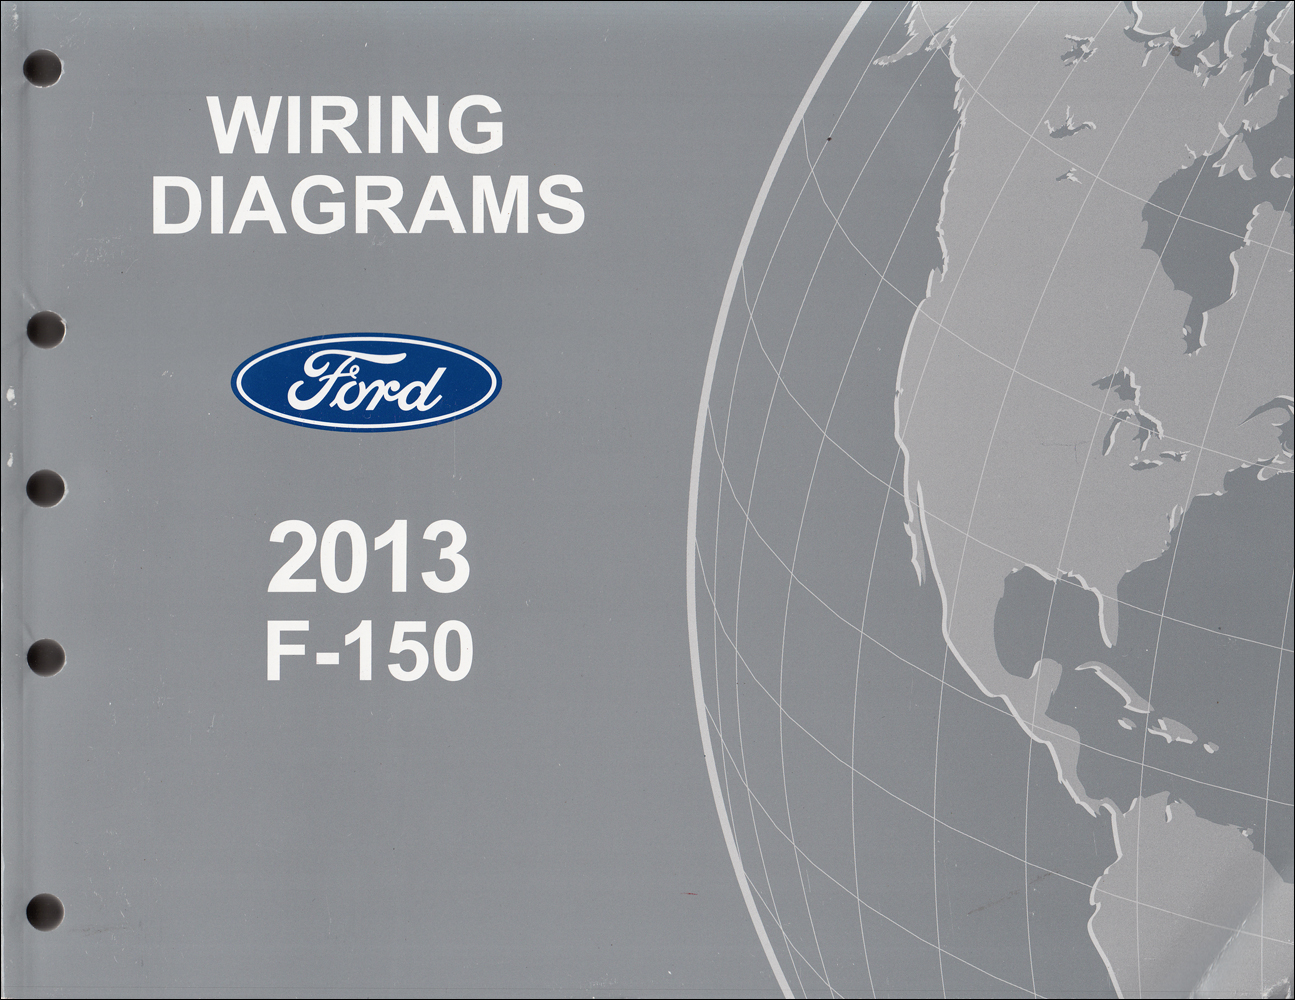 2013 Ford F-150 Wiring Diagram Manual Original